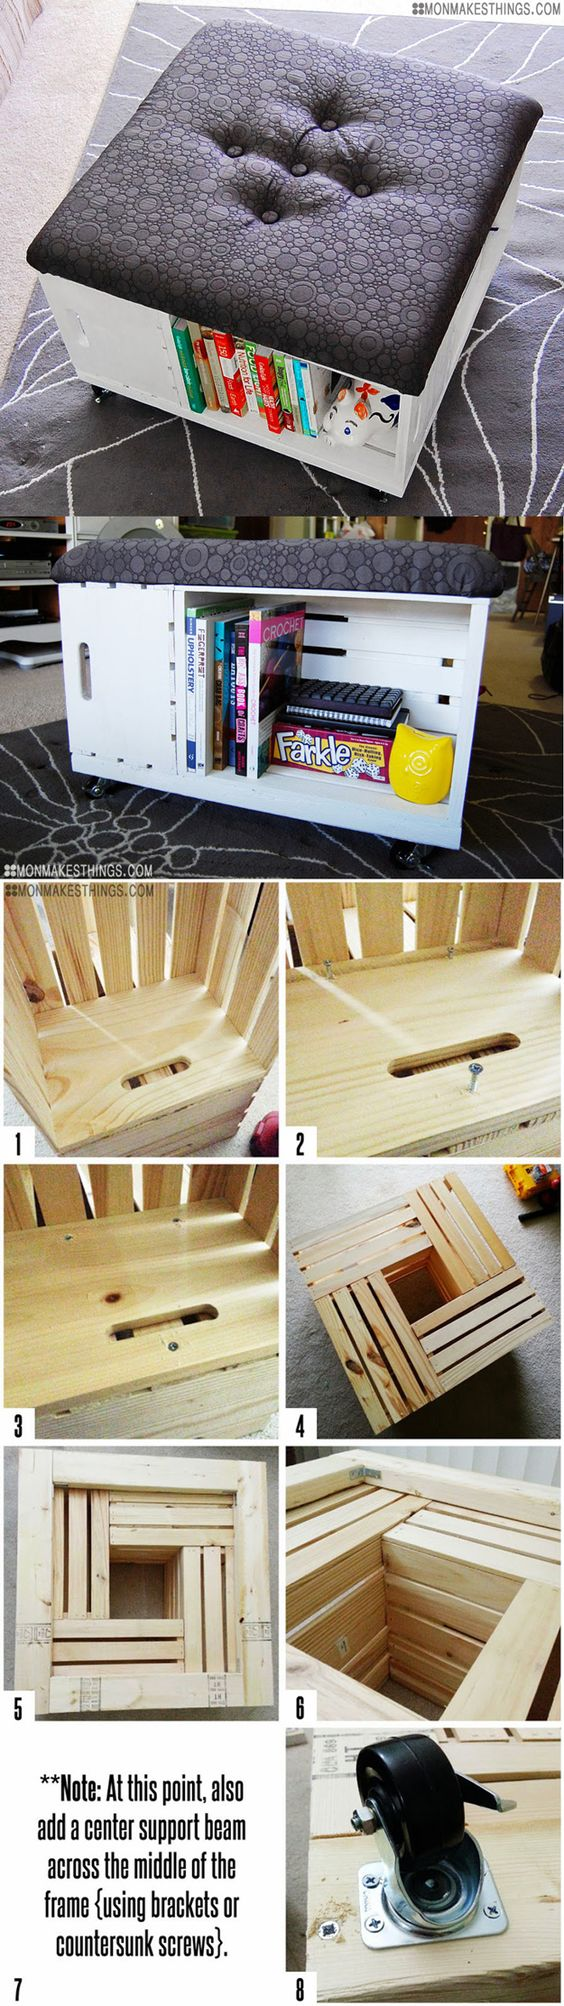 storage ottoman diy simple and fun diy home decor tutorial for renters by diy ready at httpdiyreadycomdiy room decor ideas for renters